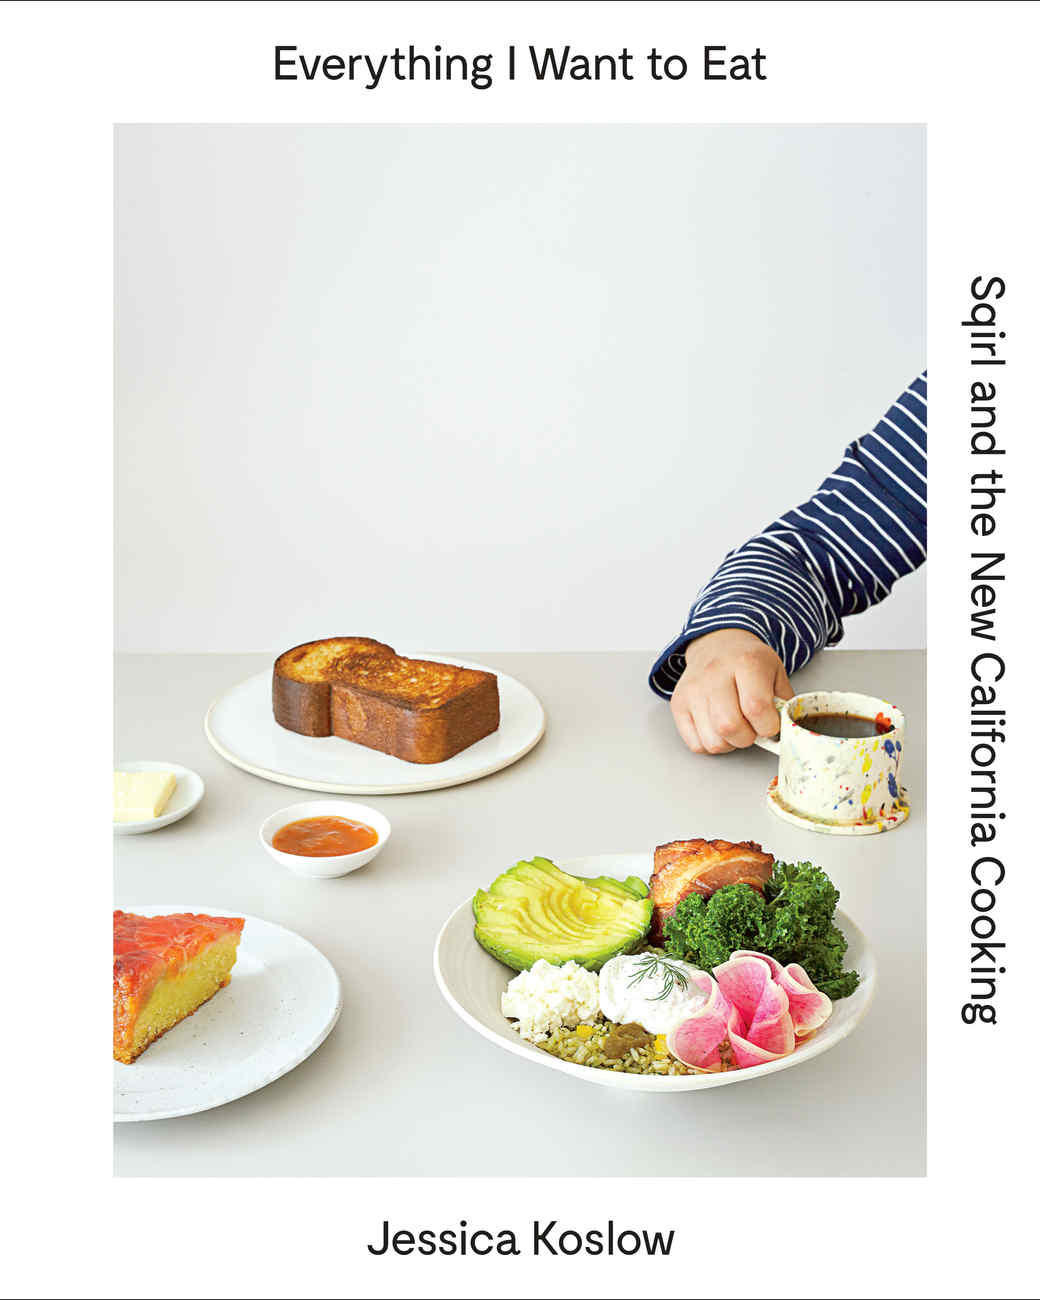 Cover of Jessica Koslow's Everything I Want to Eat